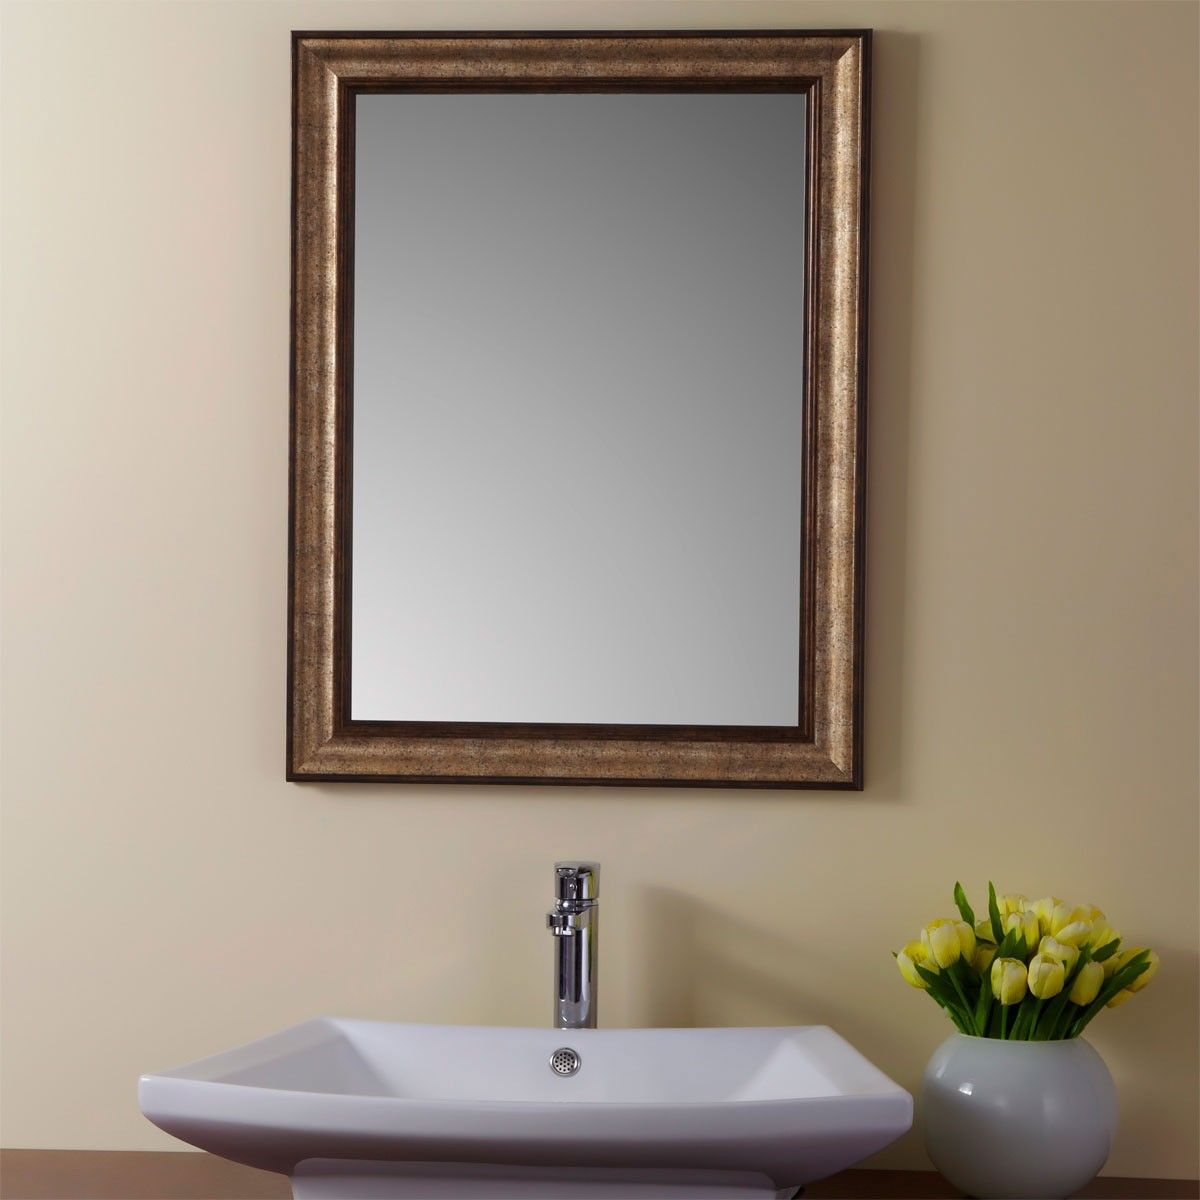 24 x 32 in reversible imitation wood frame mirror yj for Cadre miroir